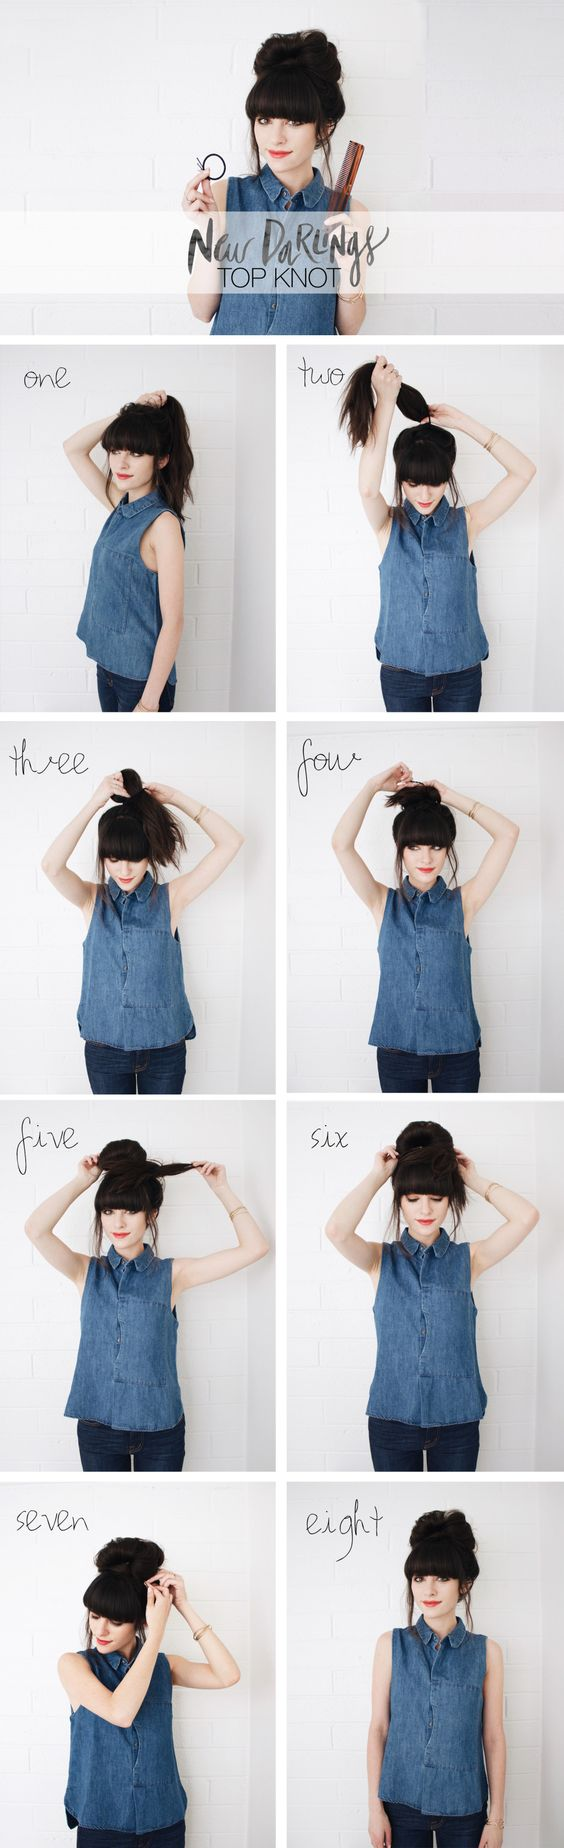 New Darlings - Top Knot Tutorial: